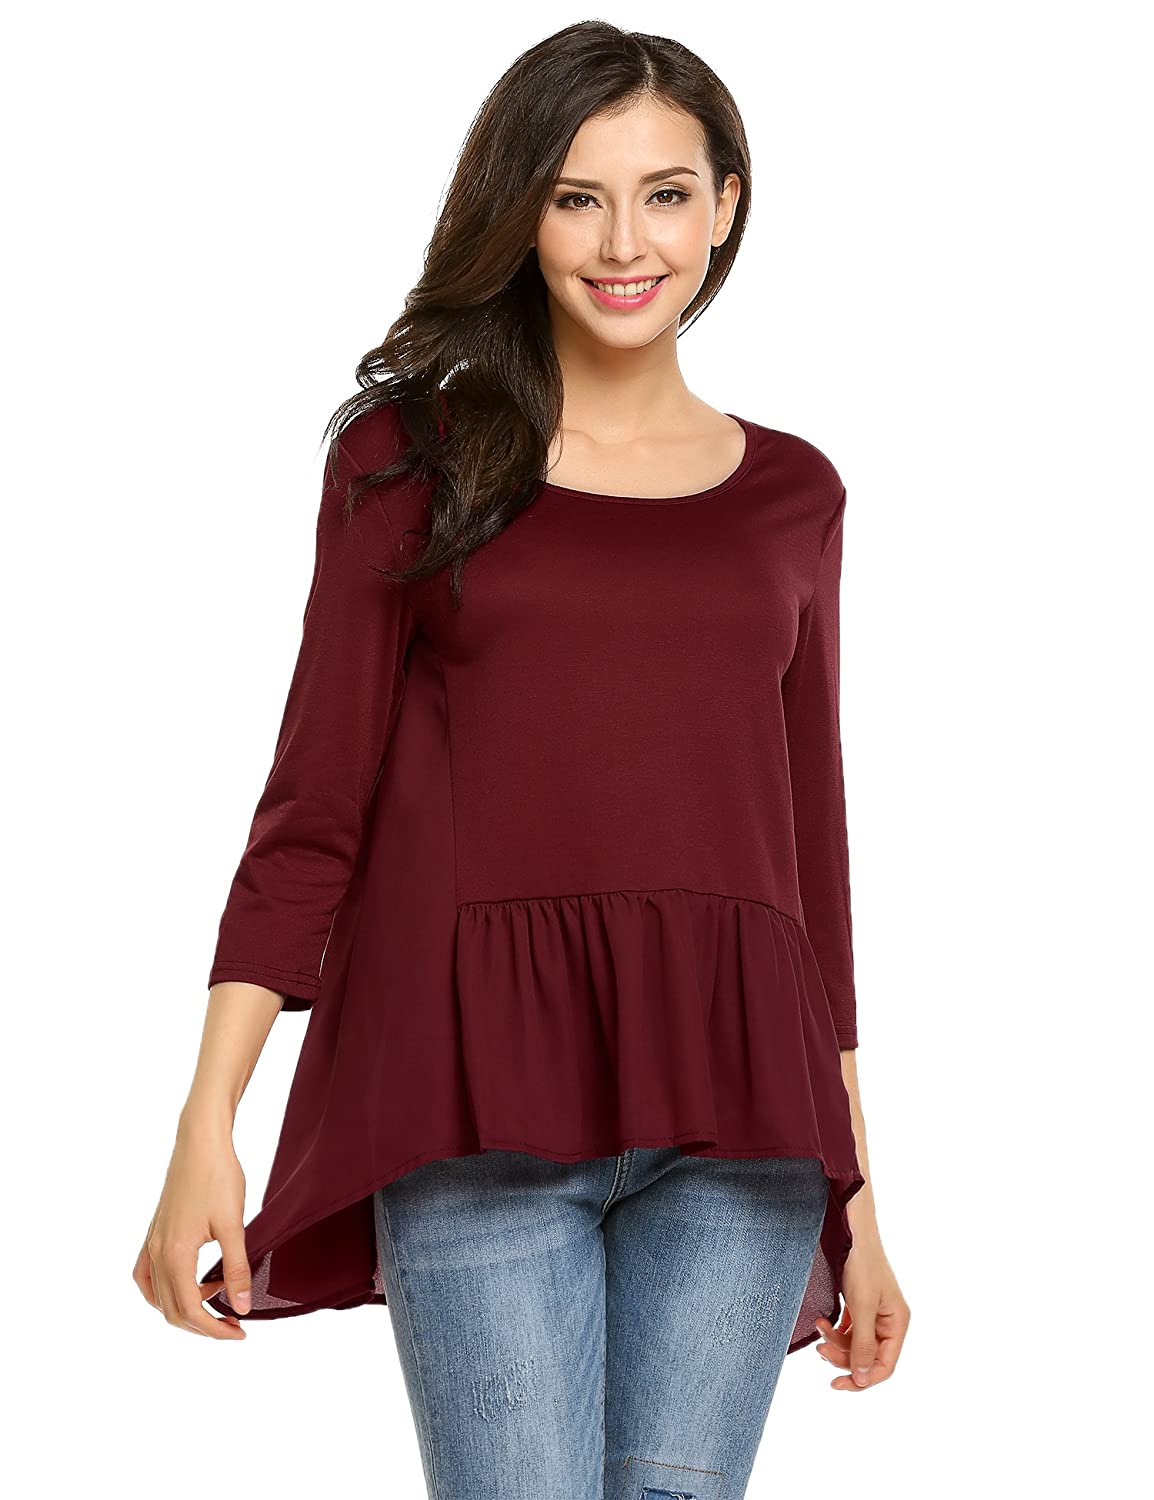 Meaneor Womens 3/4 Sleeve O-Neck Comfy Loose Fit Ruffled Hem Top MAH016167